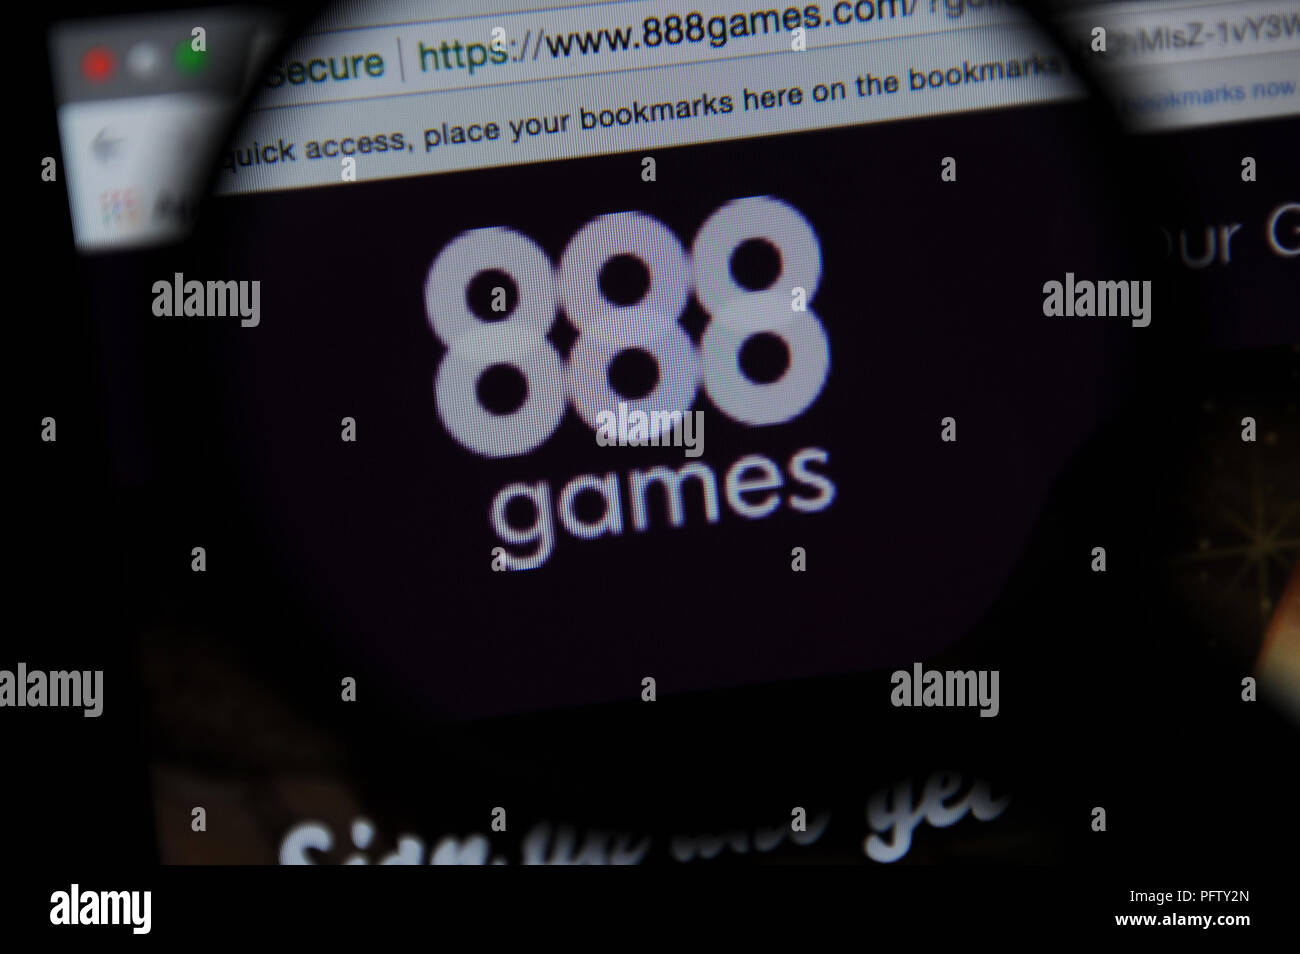 The 888 games website seen through a magnifying glass - Stock Image